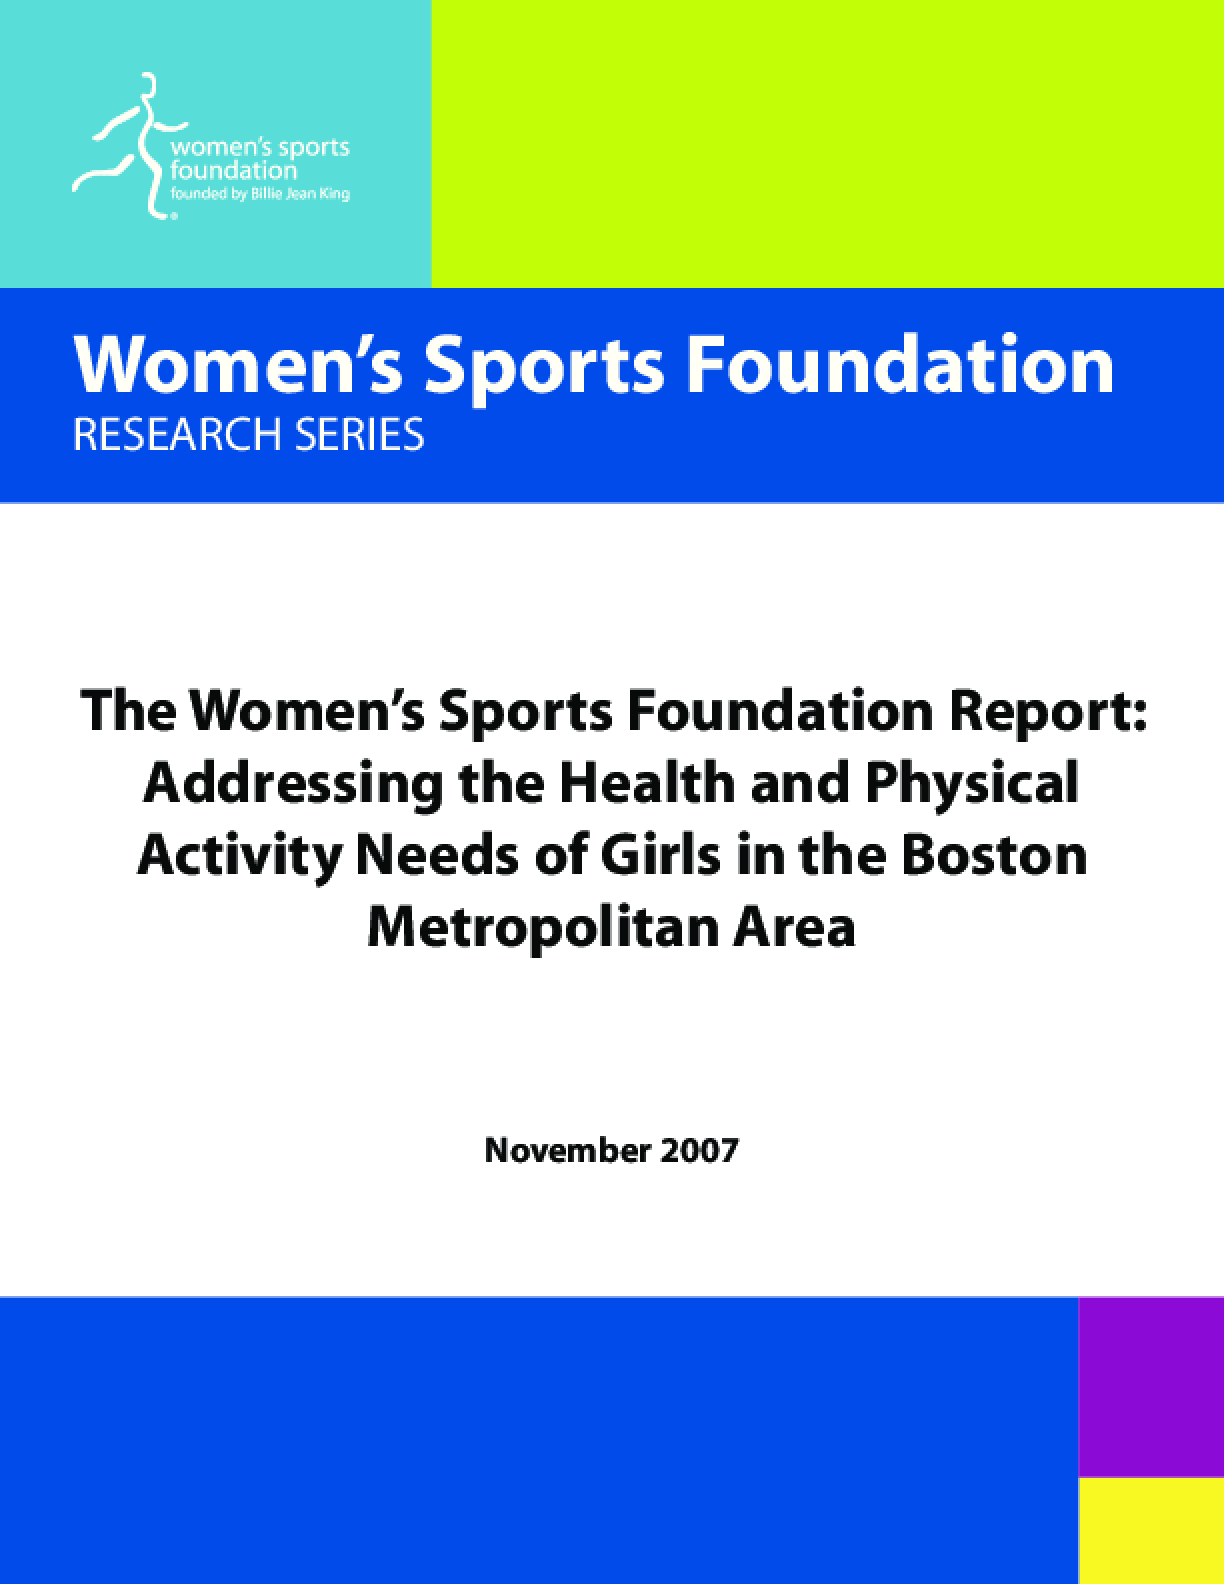 Addressing the Health and Physical Activity Needs of Girls in the Boston Metropolitan Area